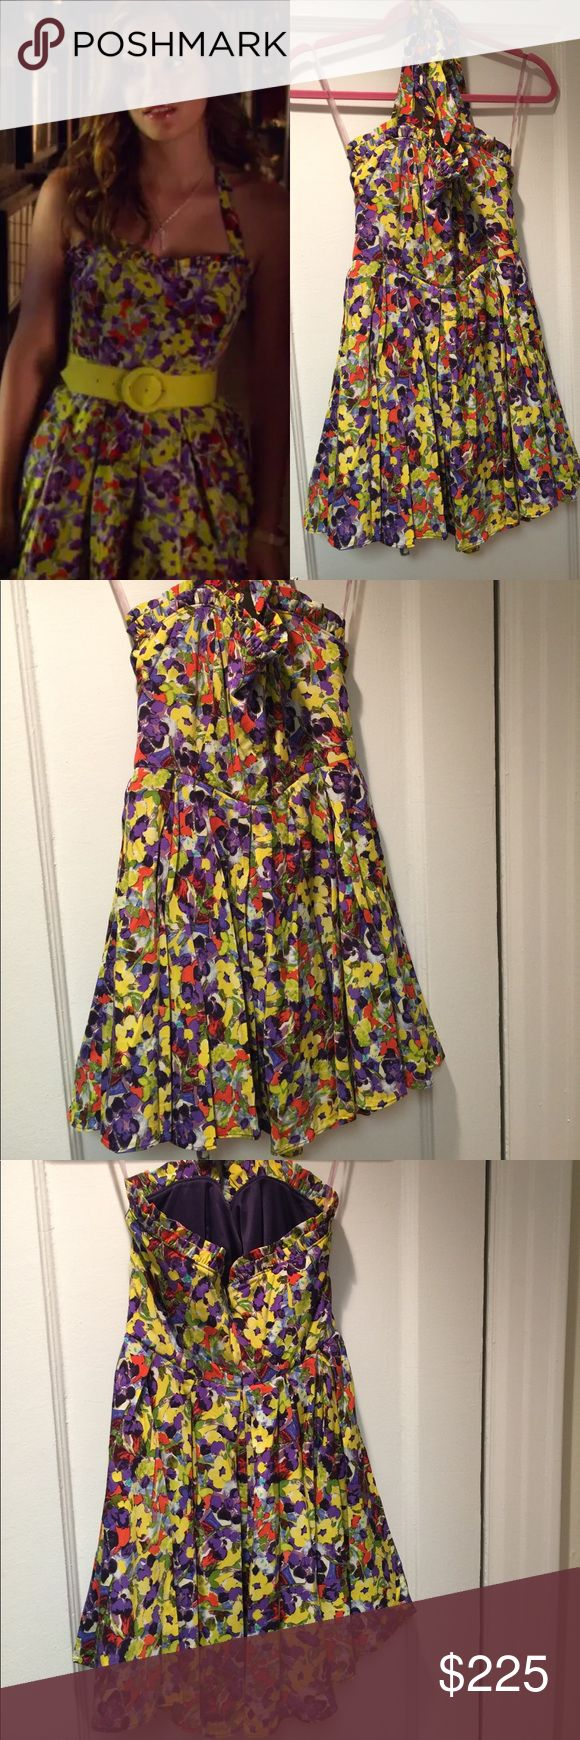 Alice + Olivia Floral Halter Dress 4 Blair Waldorf